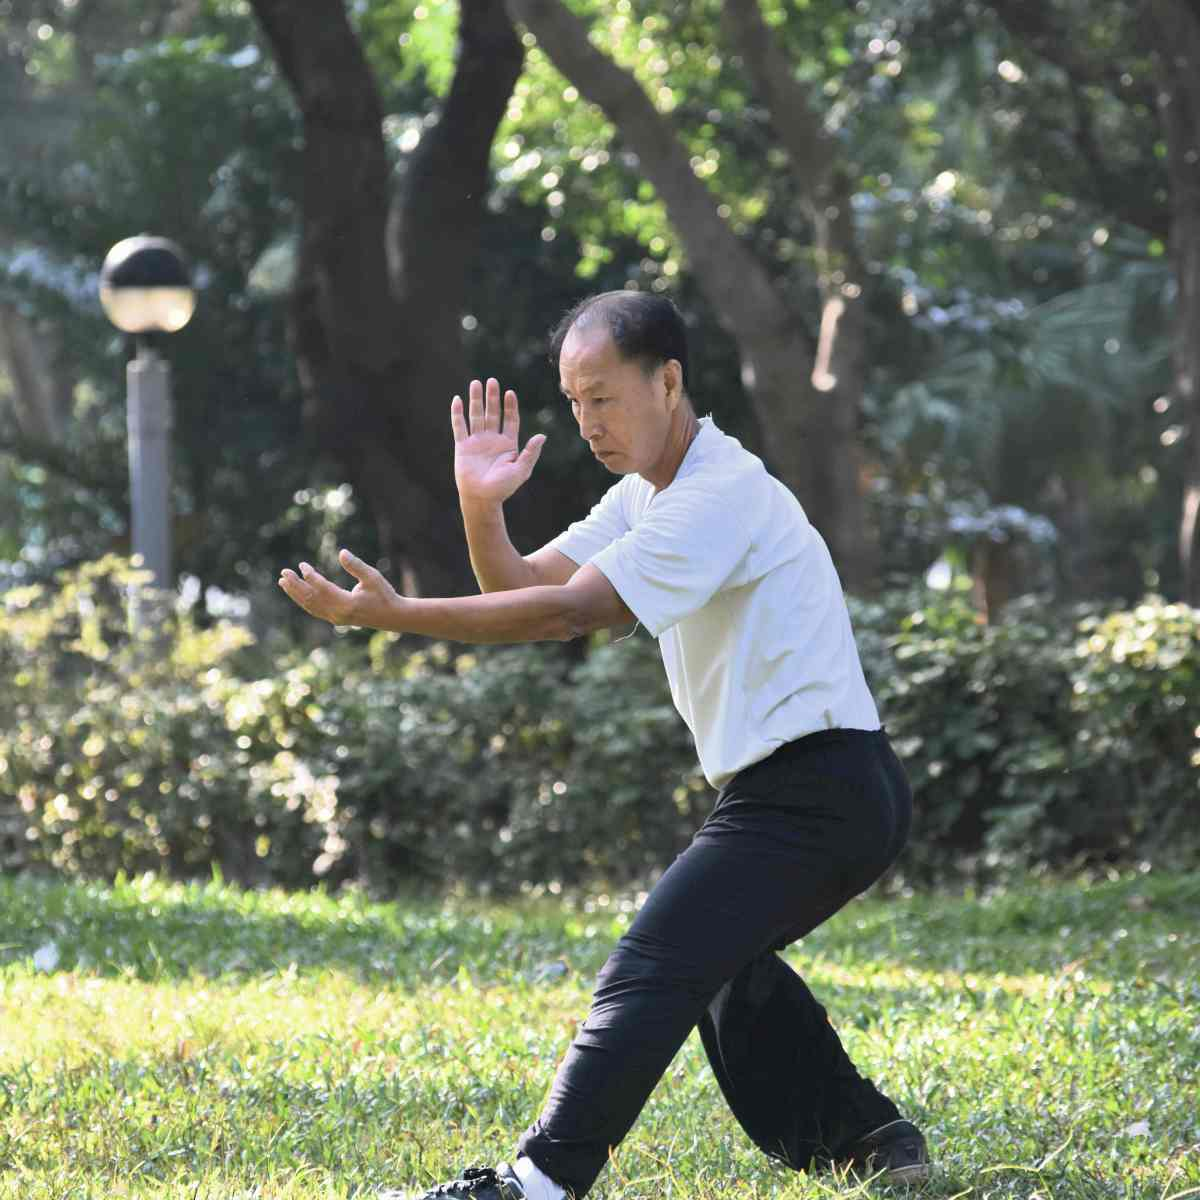 old asian man performing tai chi outdoor by the park | types of martial arts | types of martial arts self defense | all types of martial arts